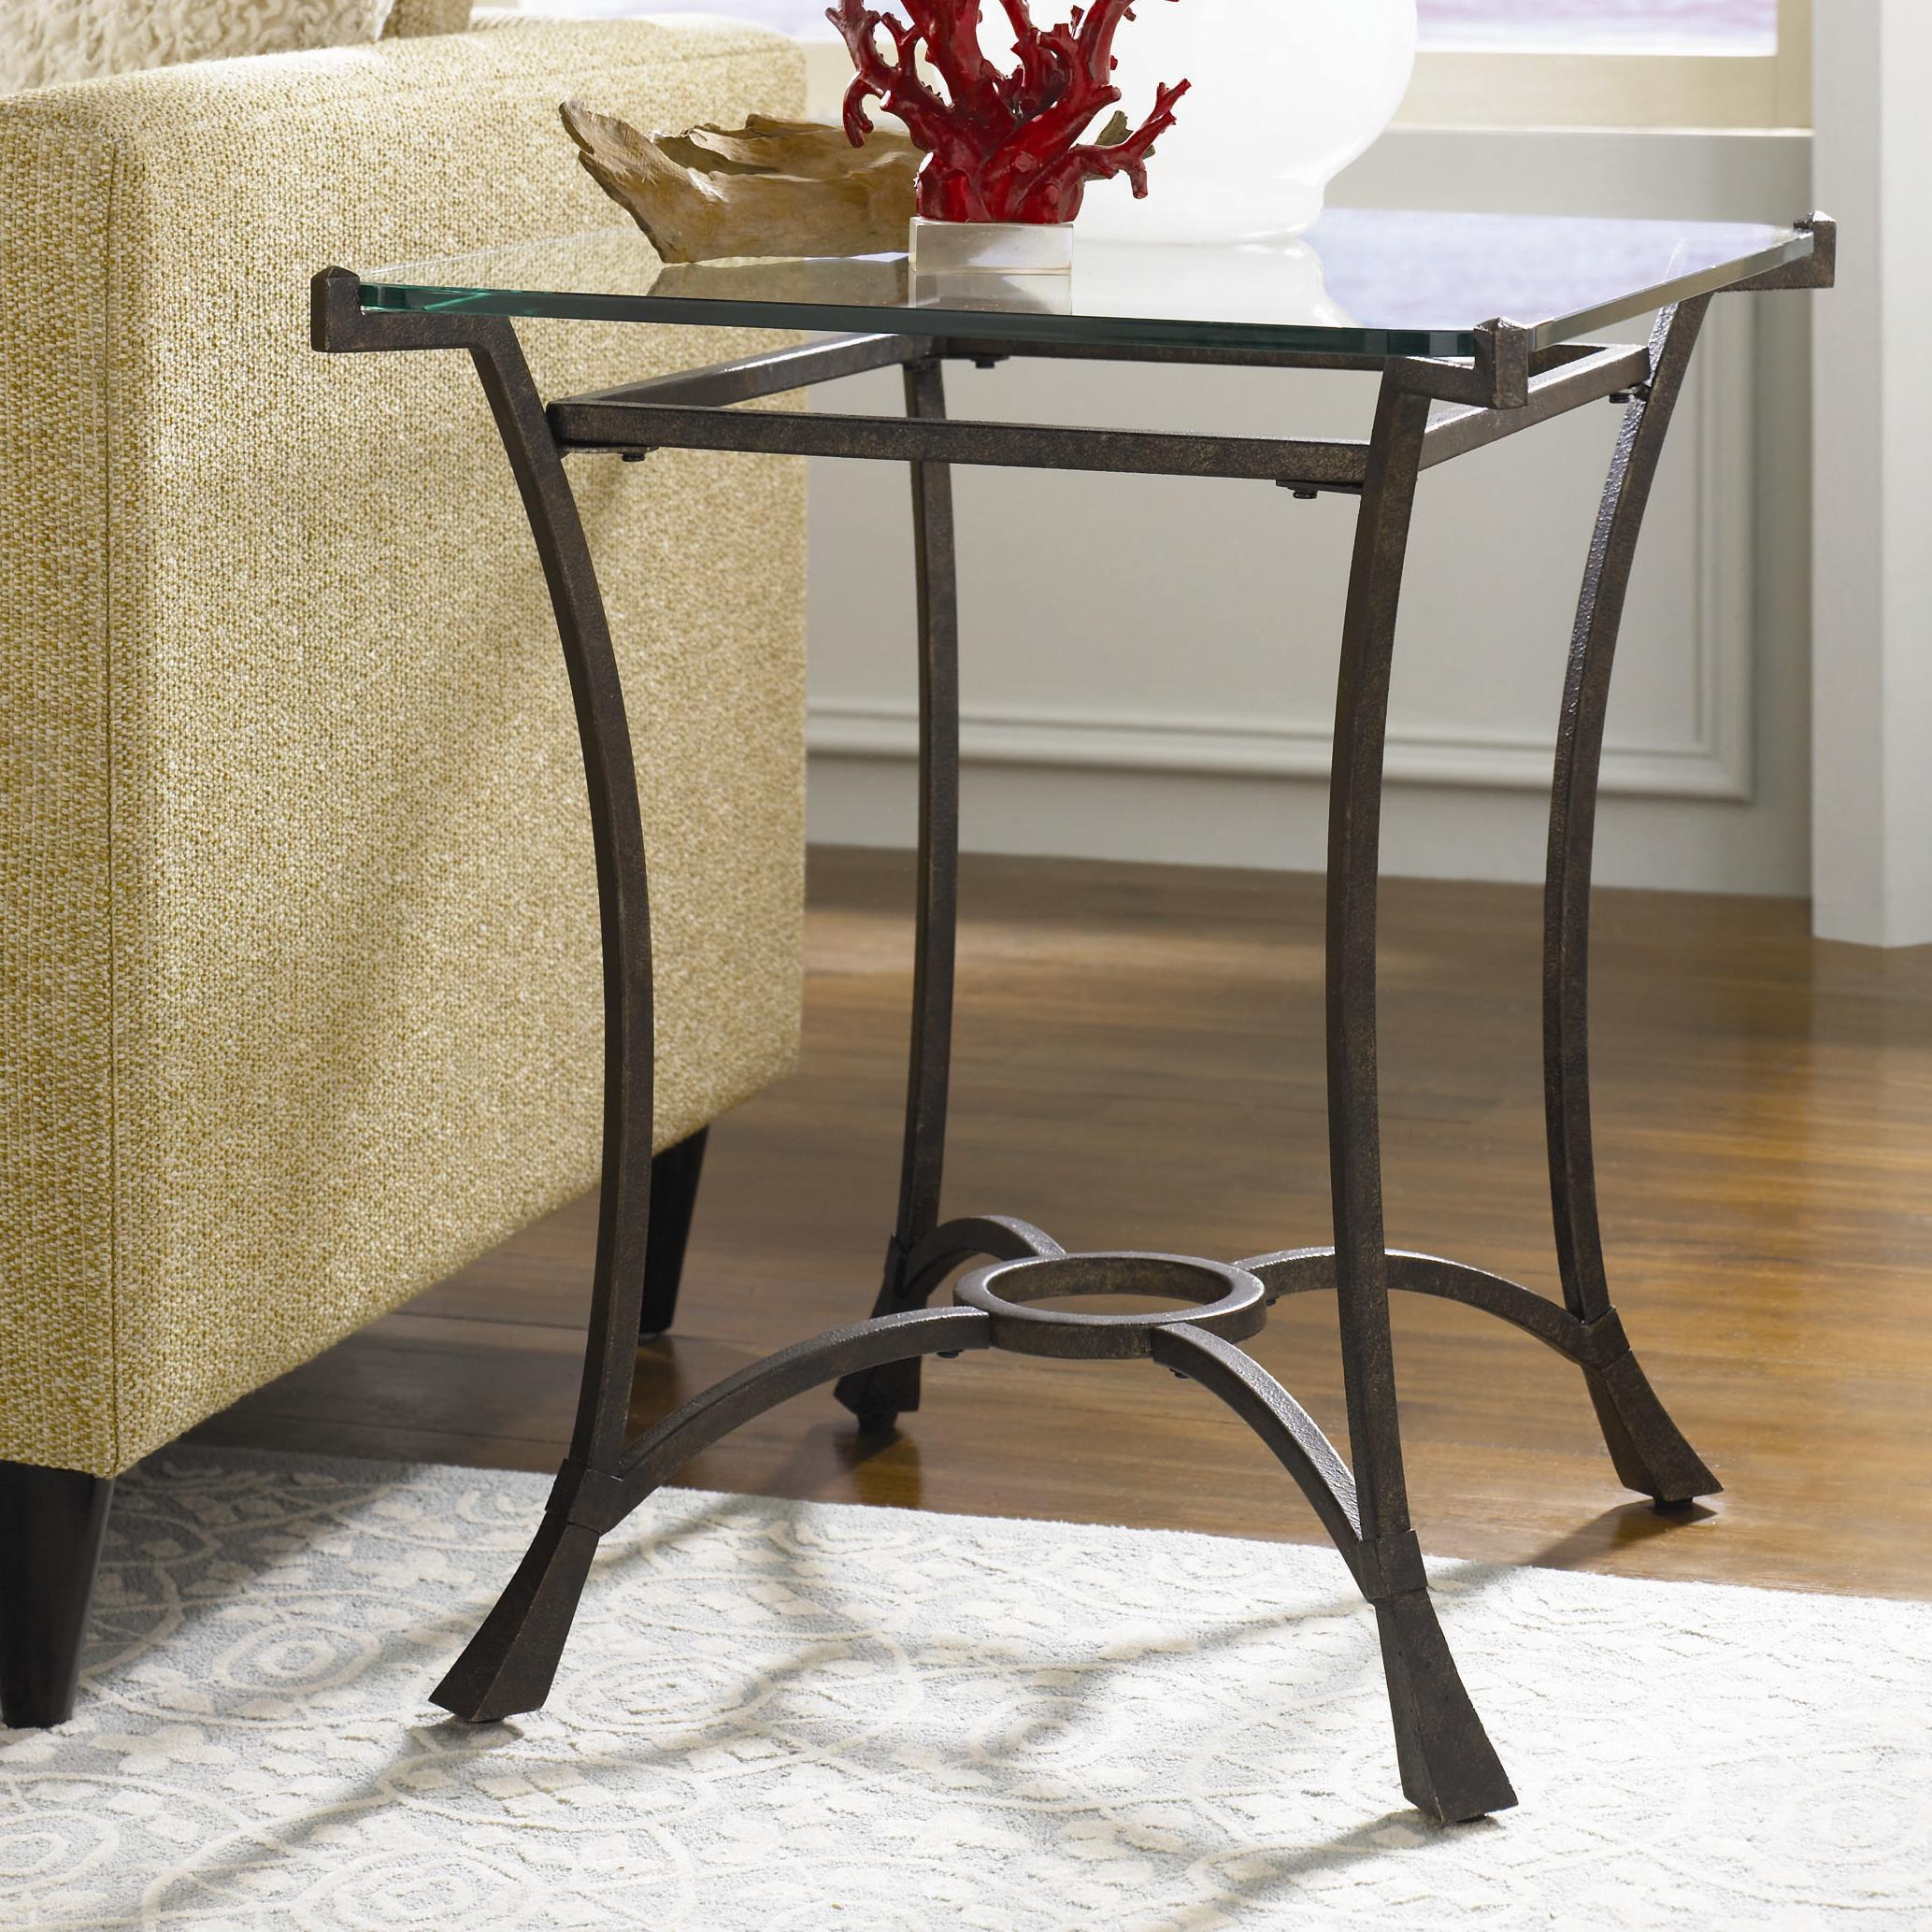 modern glass end tables lisaasmith bedroom furniture and metal raw wood bedside rustic coffee table with storage outdoor elephant ashley brandon distressed lift top fold out big